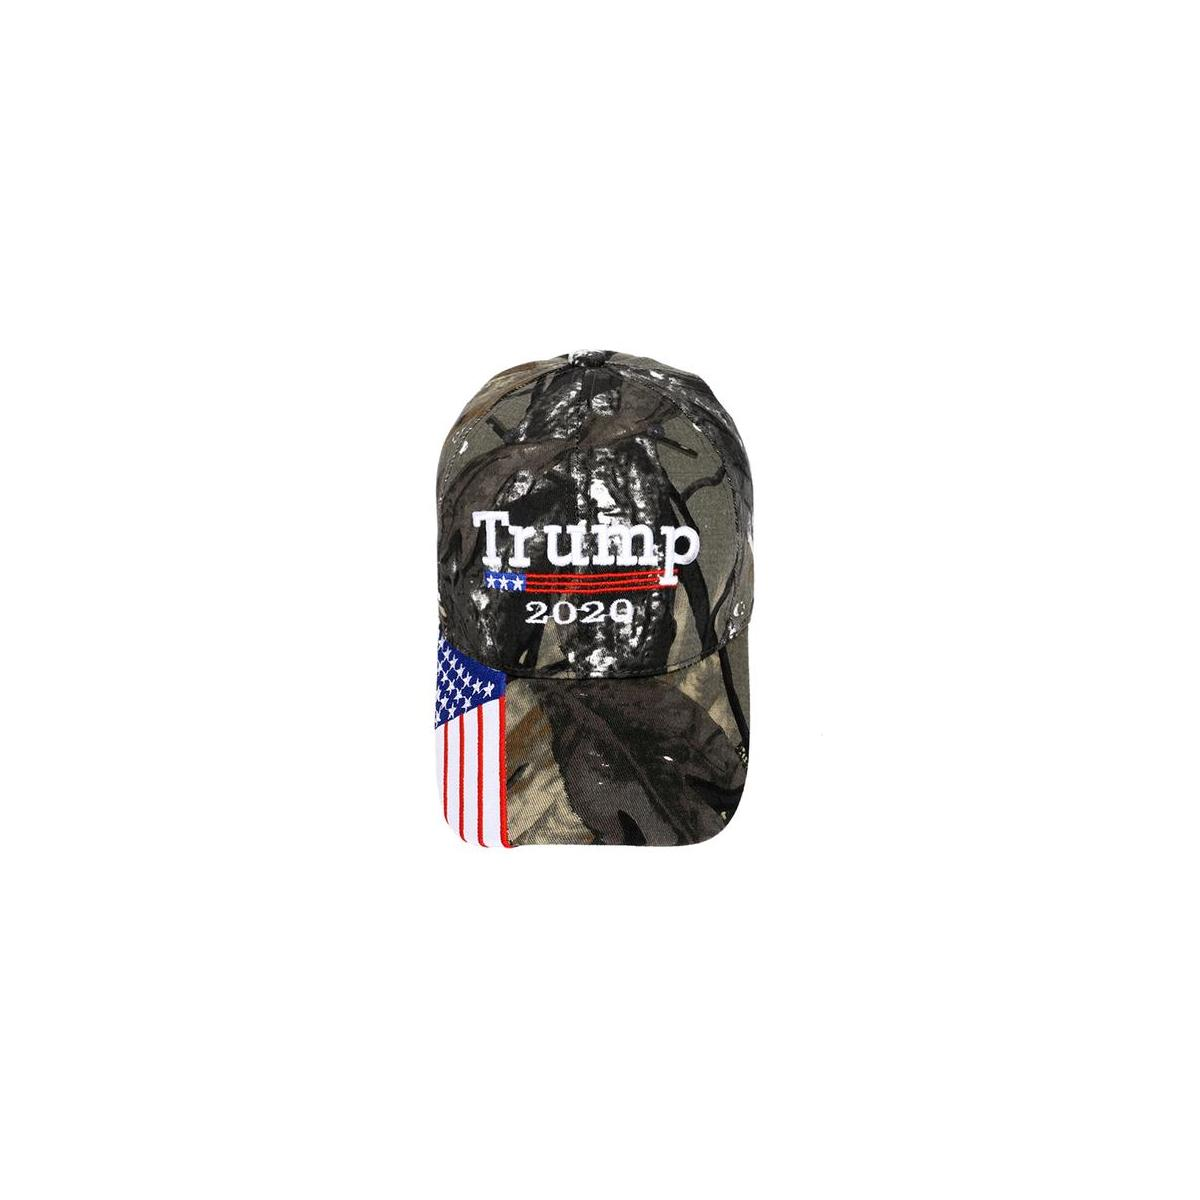 Como - Trump Baseball Cap Flag Keep America Great Trump Hat Campaign Embroidered/Printed Signature